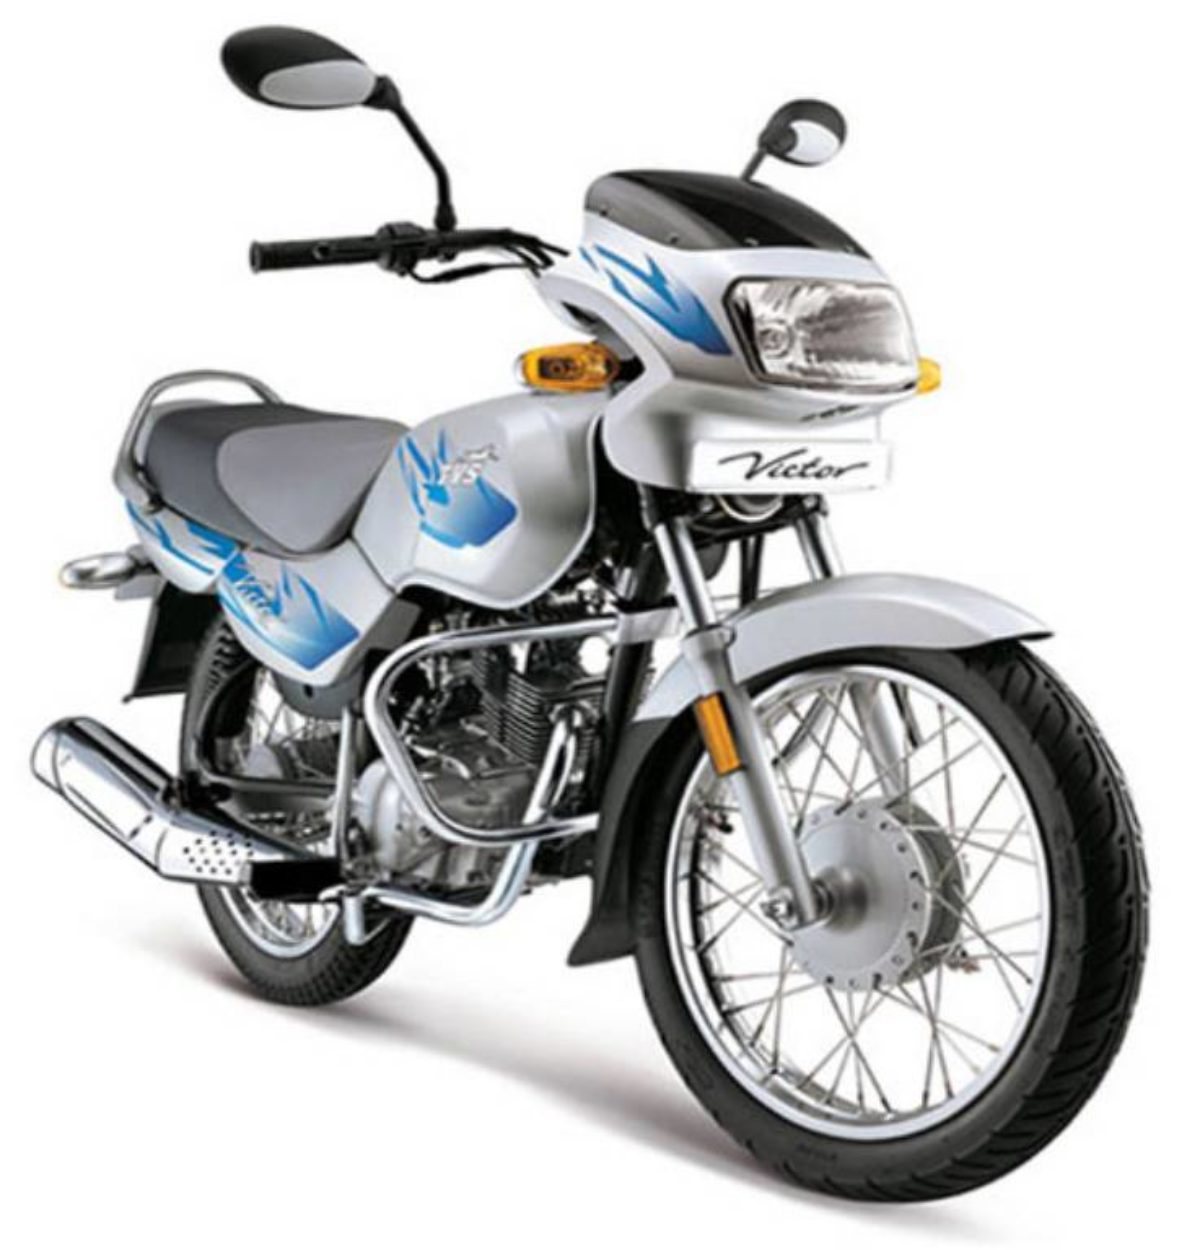 2011 TVS Victor Re-Launch In India